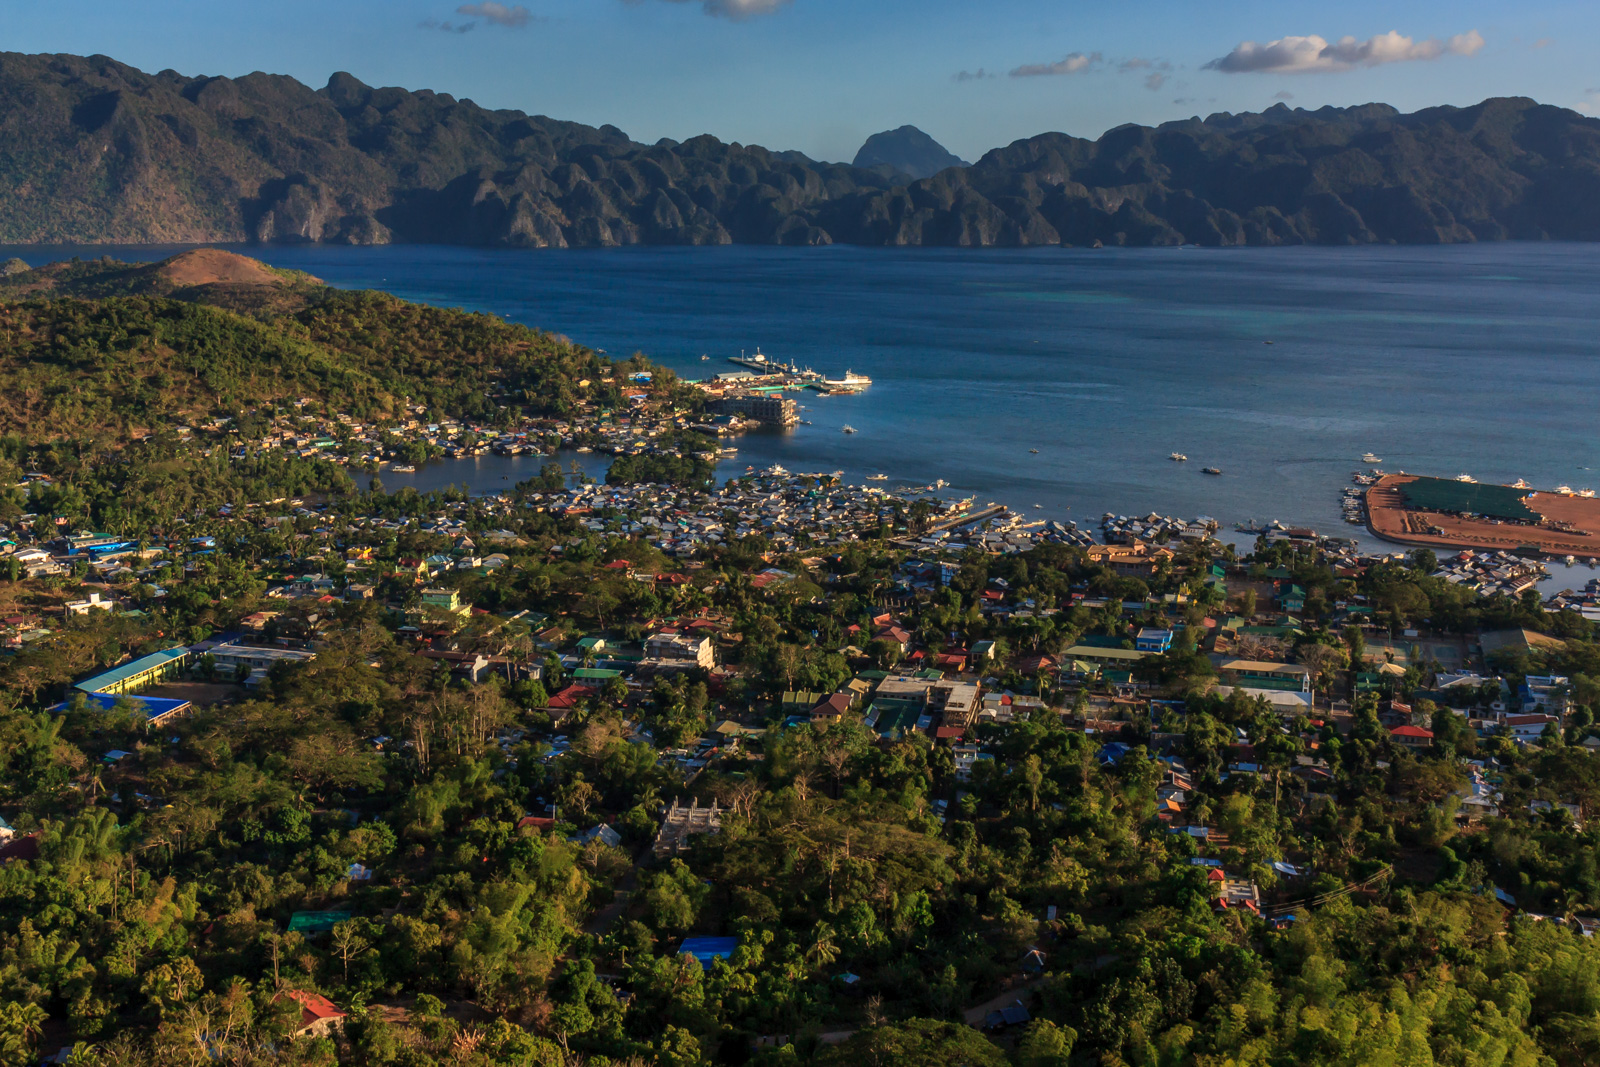 Coron Town, from the top of the hill.